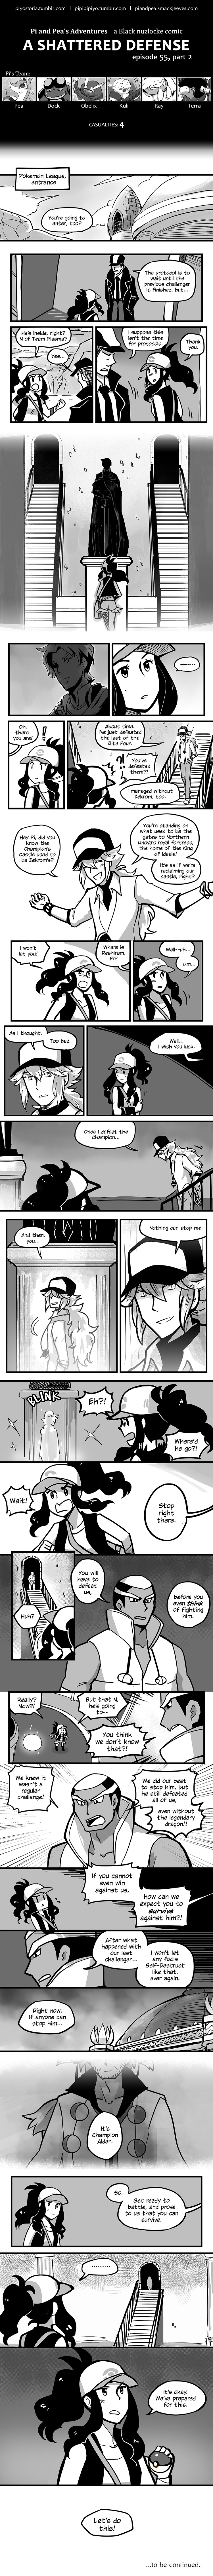 Pi and Pea's Nuzlocke Adventures :: Comics - 55 - A Shattered